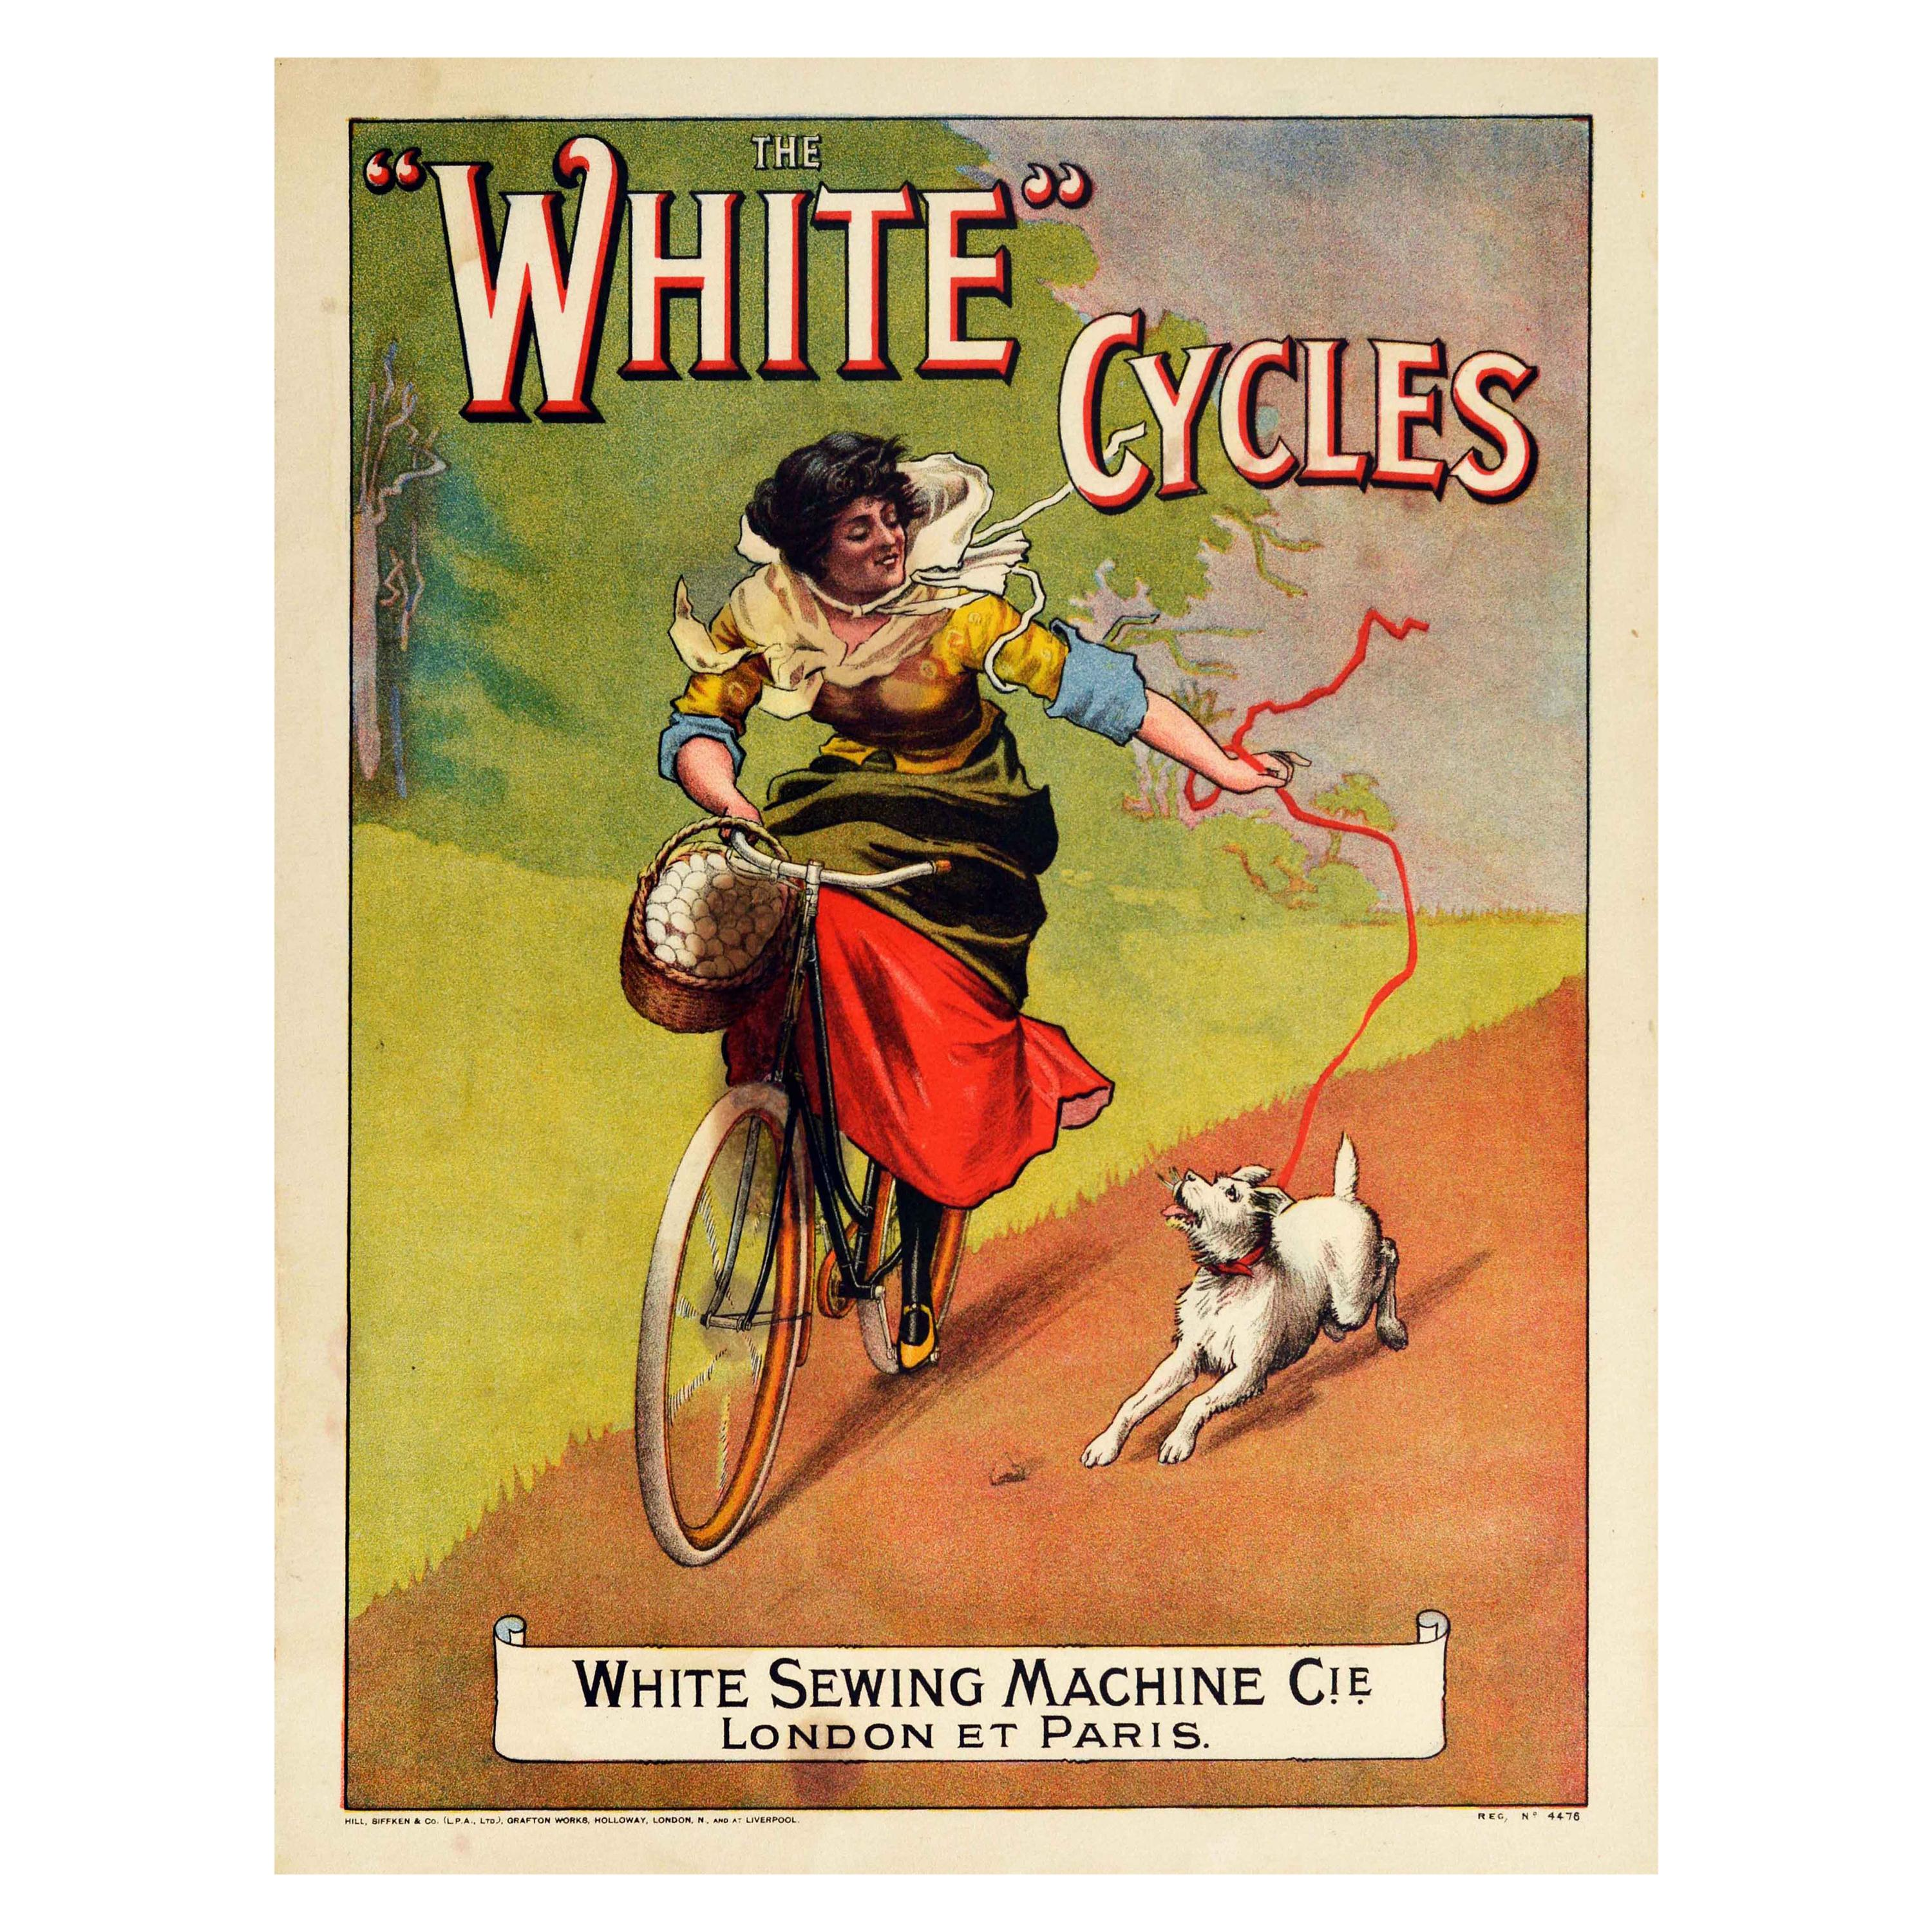 Original Antique Bicycle Poster White Cycles White Sewing Machine Cyclist & Dog